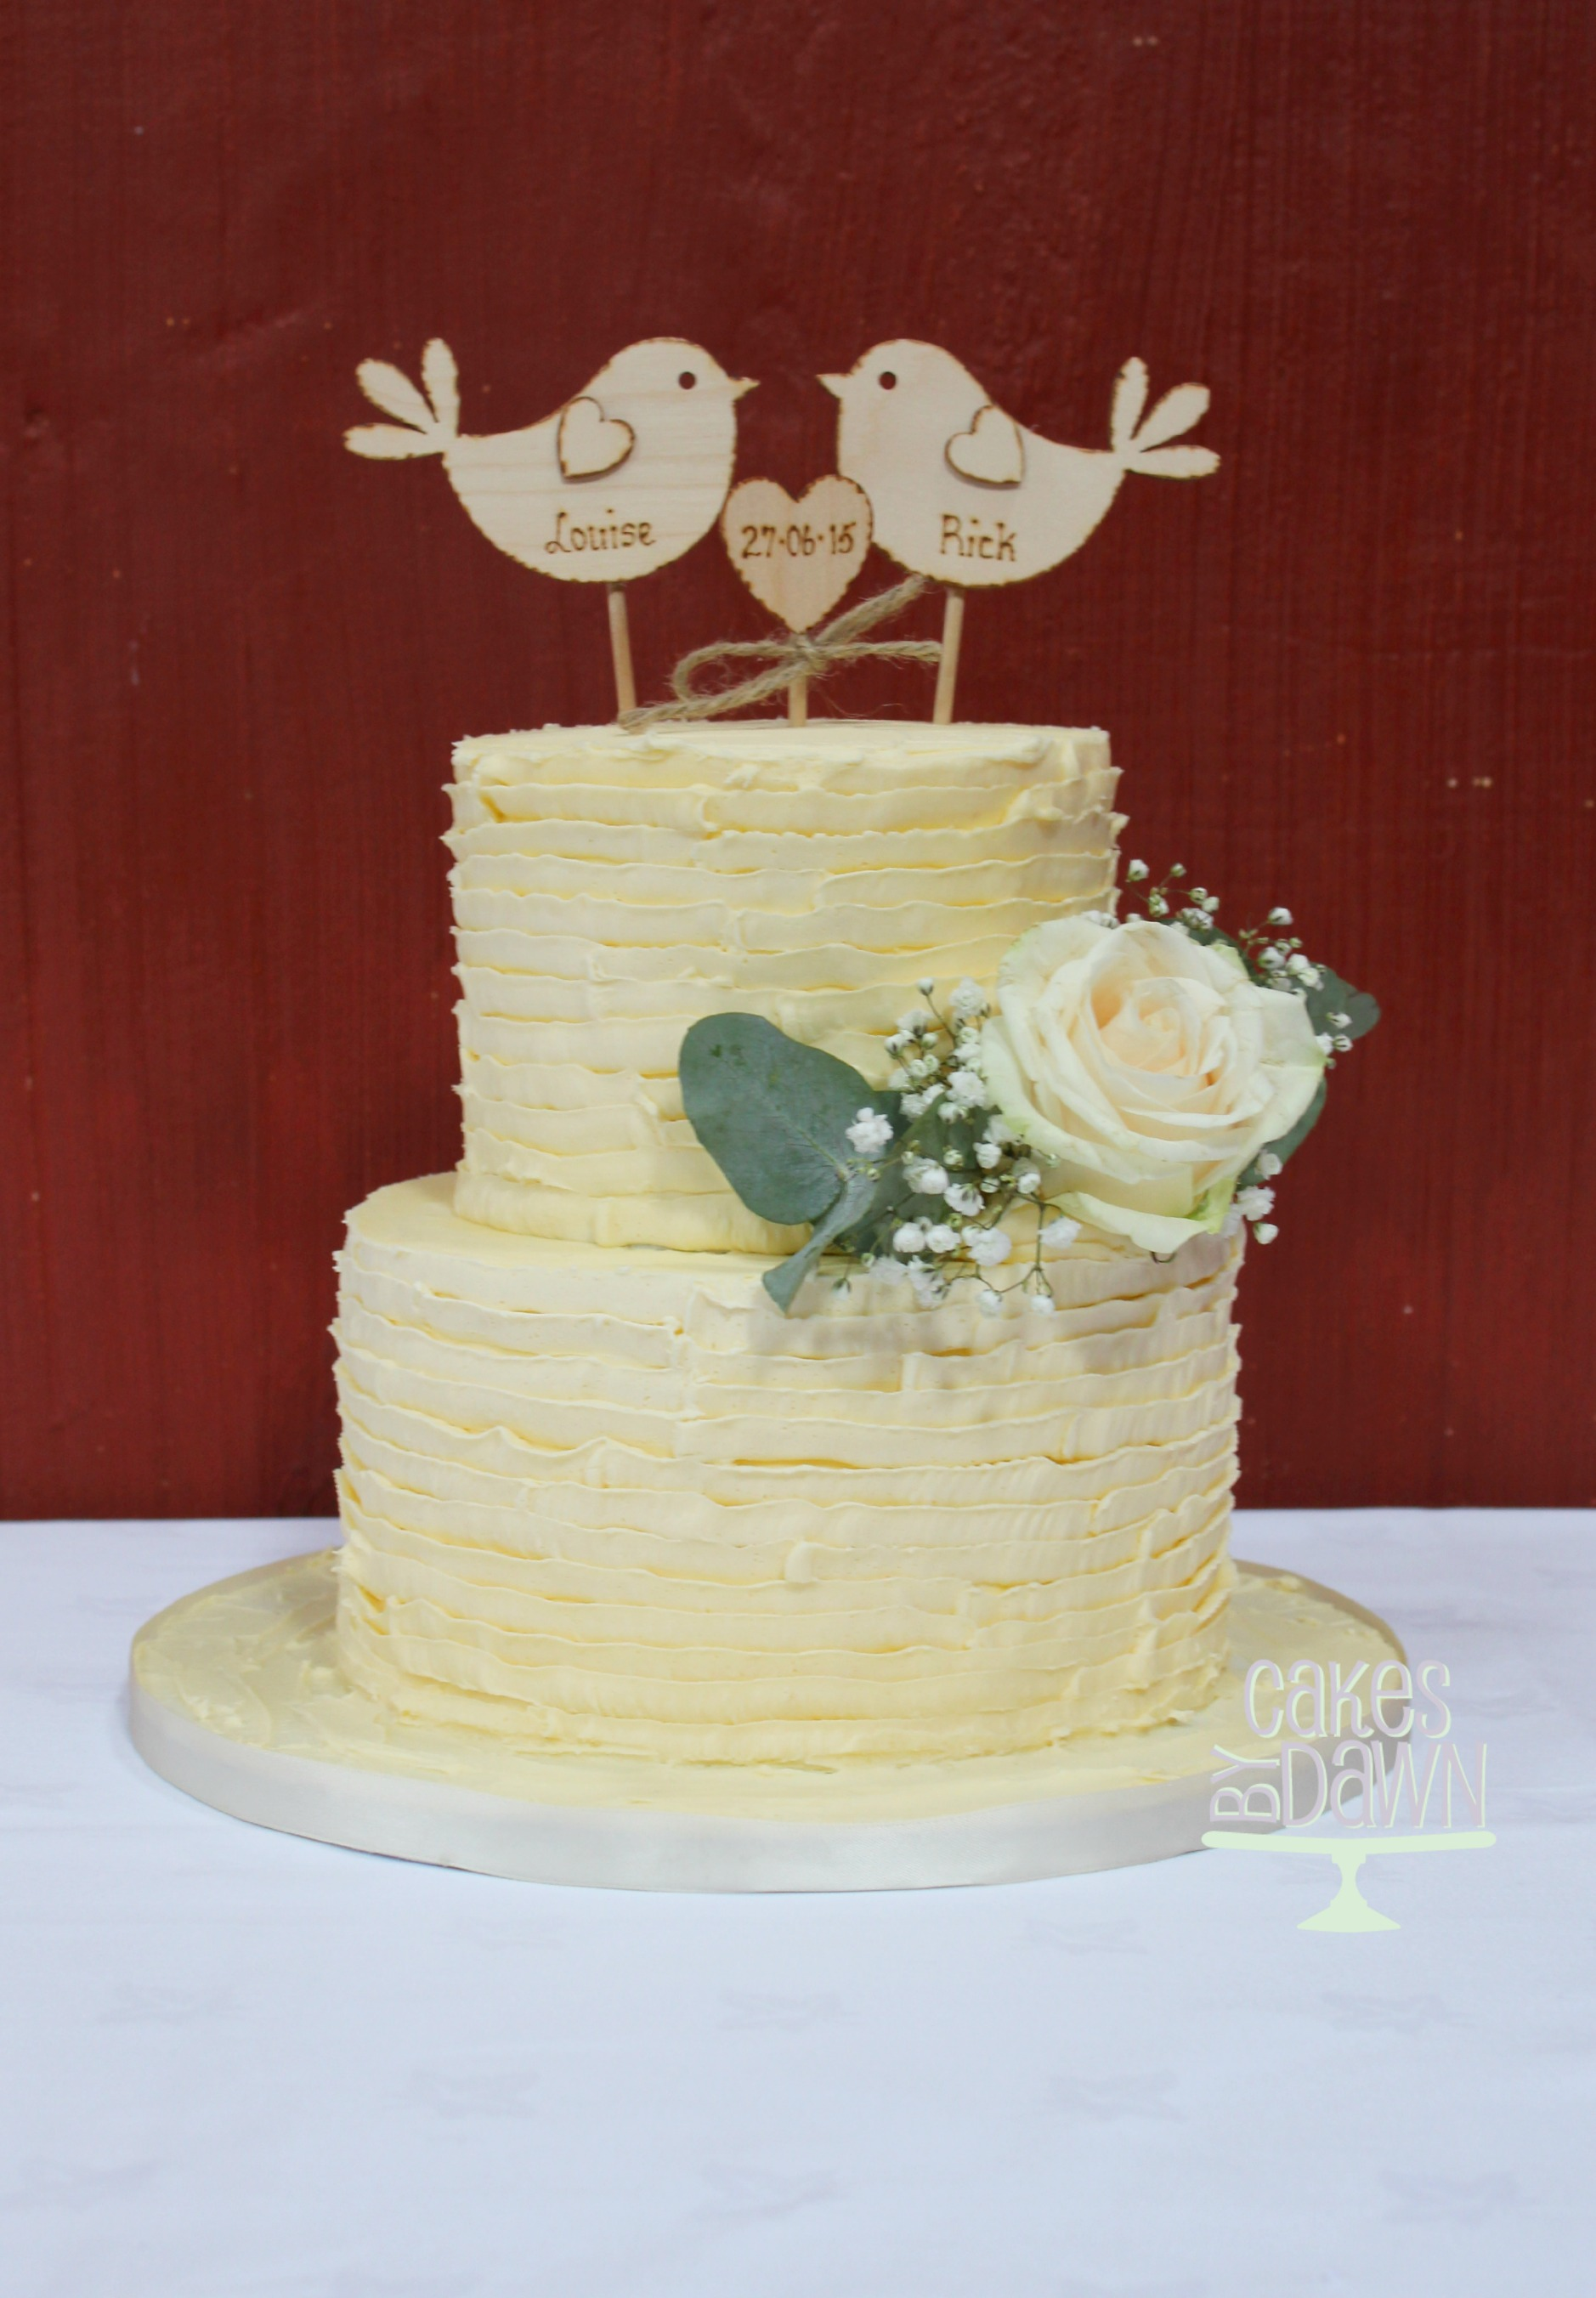 Amazing Cakes From Cakes By Dawnh Voltaire Weddings